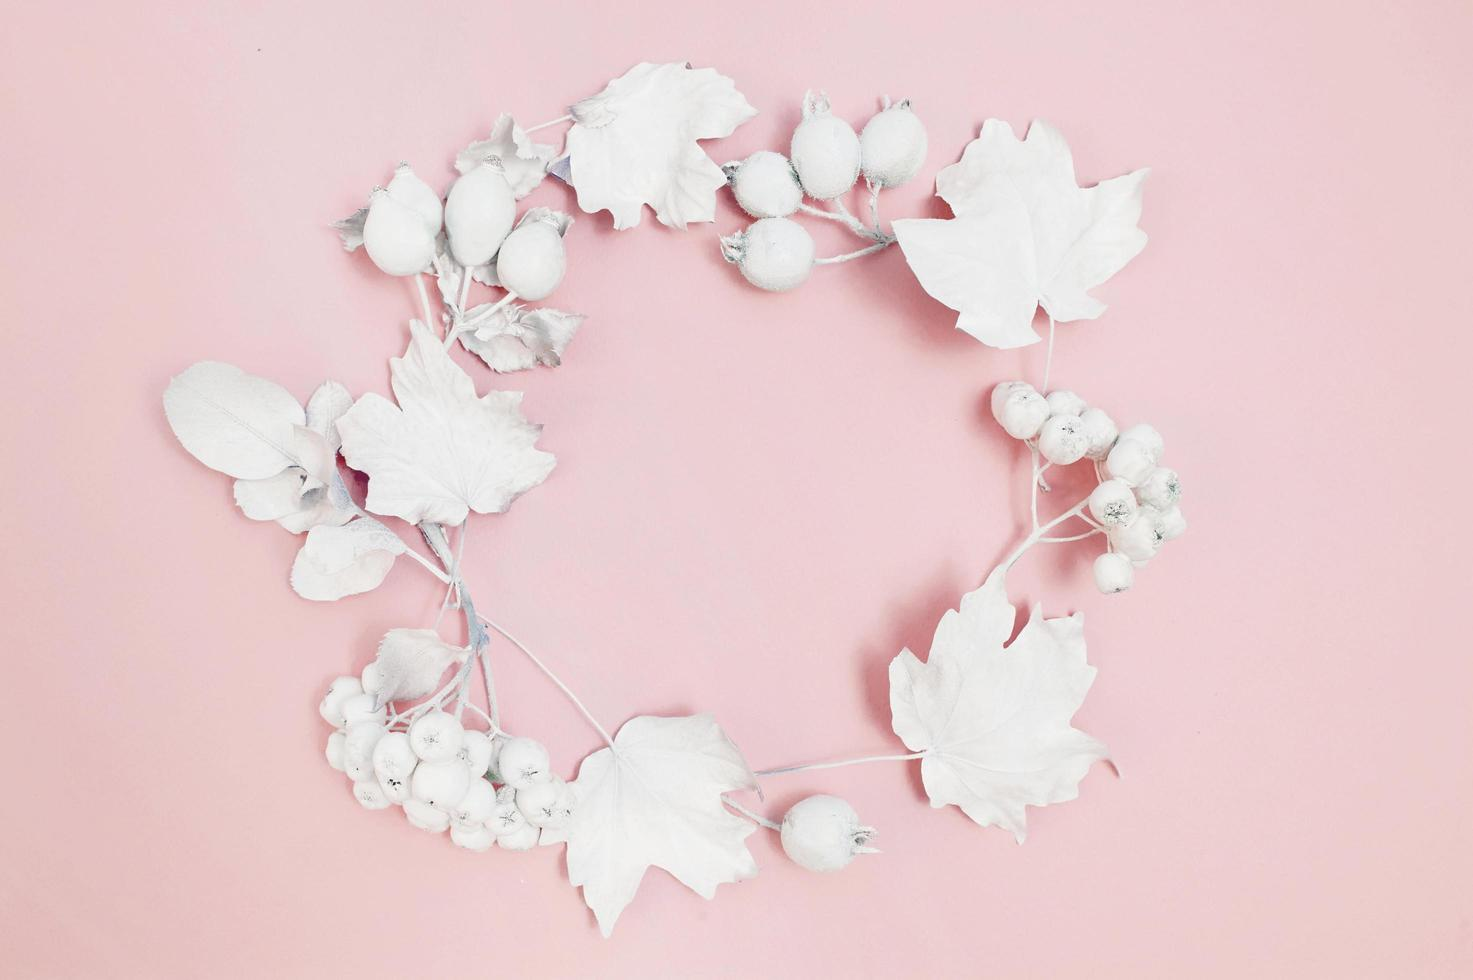 Circle of white berries and white leaves on pink background photo